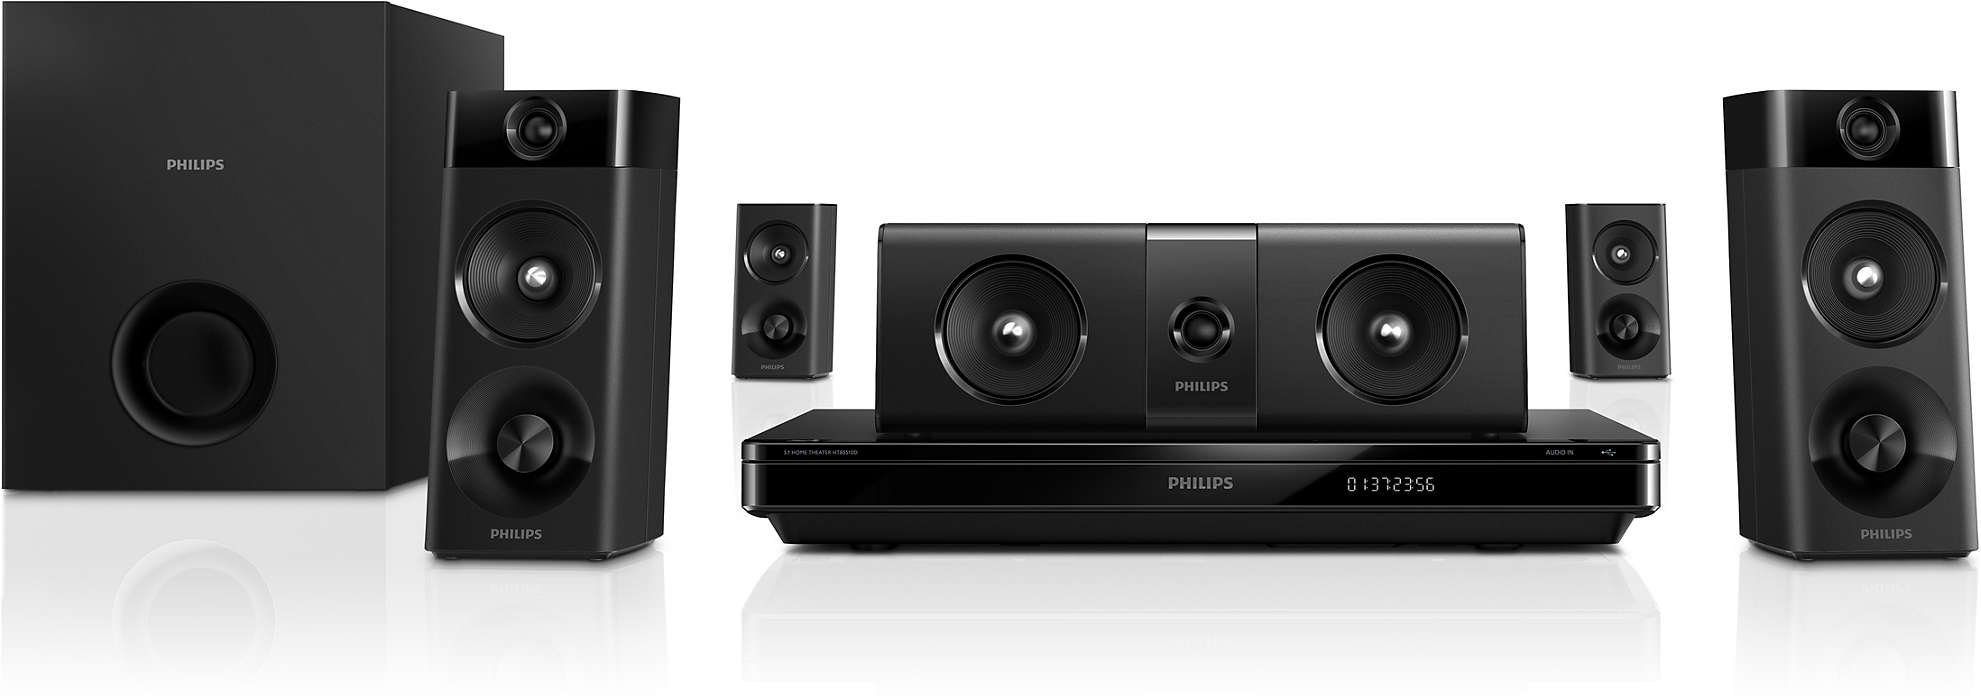 True cinematic experience with Crystal Clear Sound